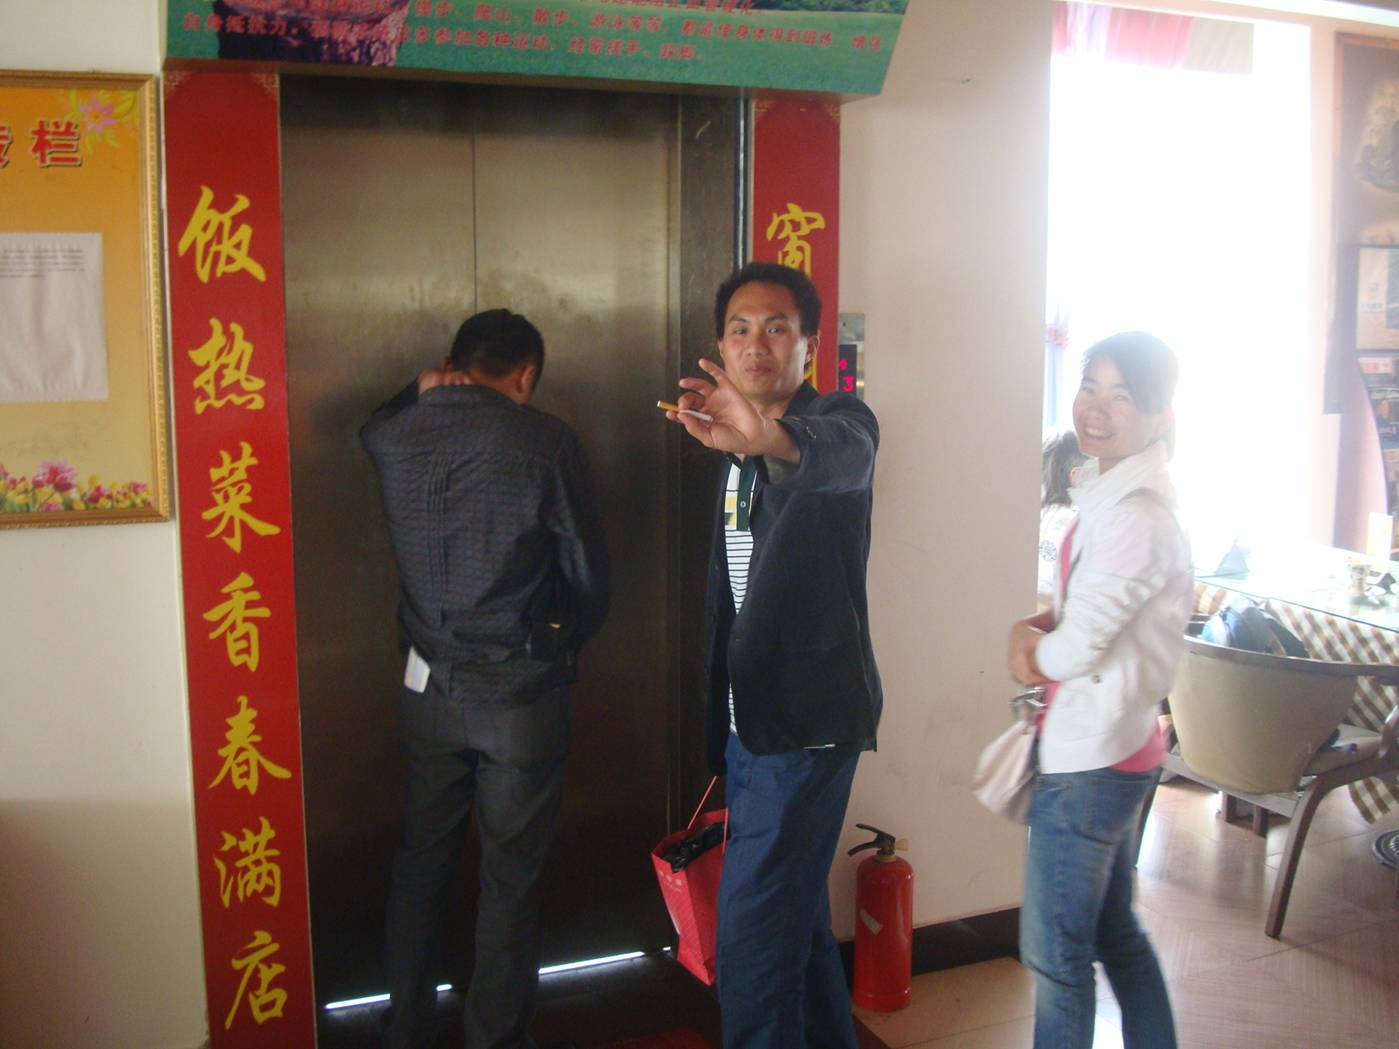 Picture:  He was about to walk into that elevator with that cigarette and not a moment's thought.  Haikou, Hainan Island, China